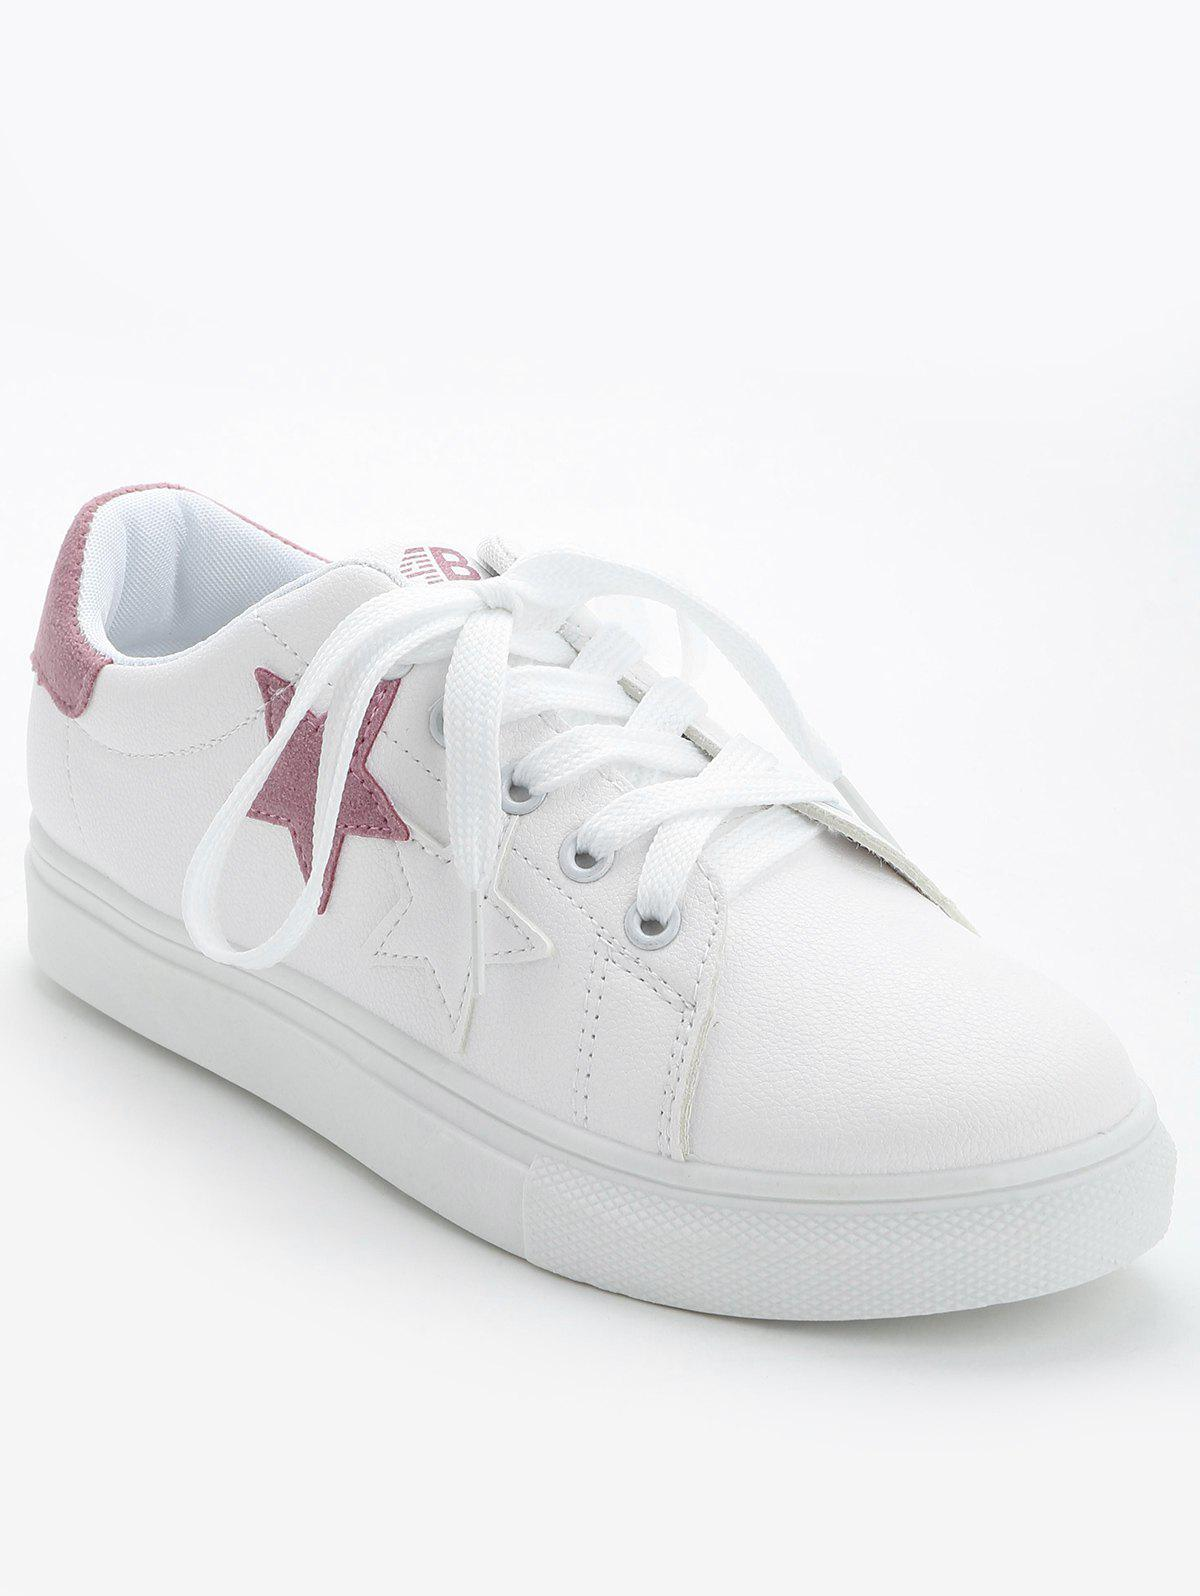 Contrasting Color Pentagram Skate Shoes - PAPAYA 37